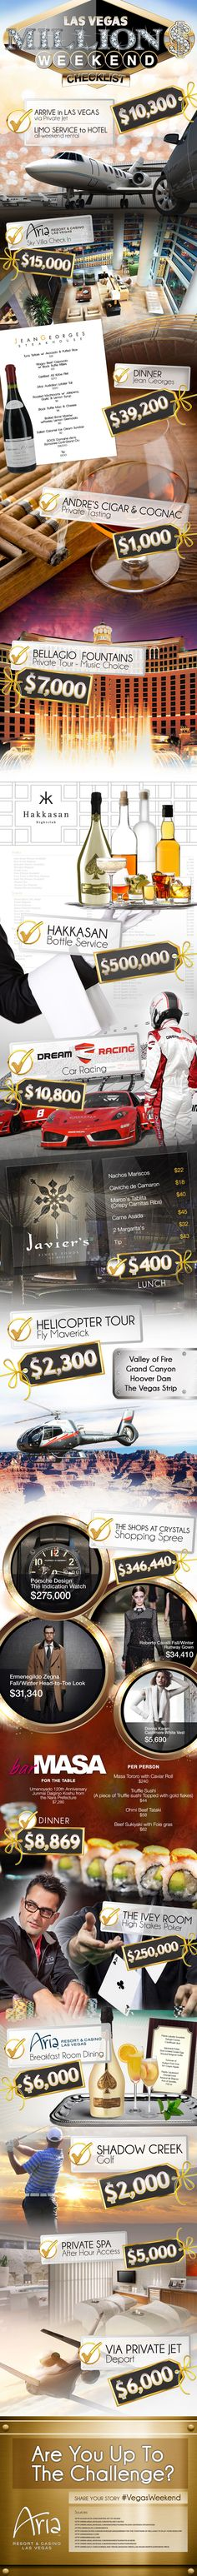 PR Daily example of the best infographic - Las Vegas Million Dollar Weekend Checklist Places To Travel, Places To See, Travel Destinations, Las Vegas Nevada, Infographic, Around The Worlds, Vacation, Social Marketing, Content Marketing